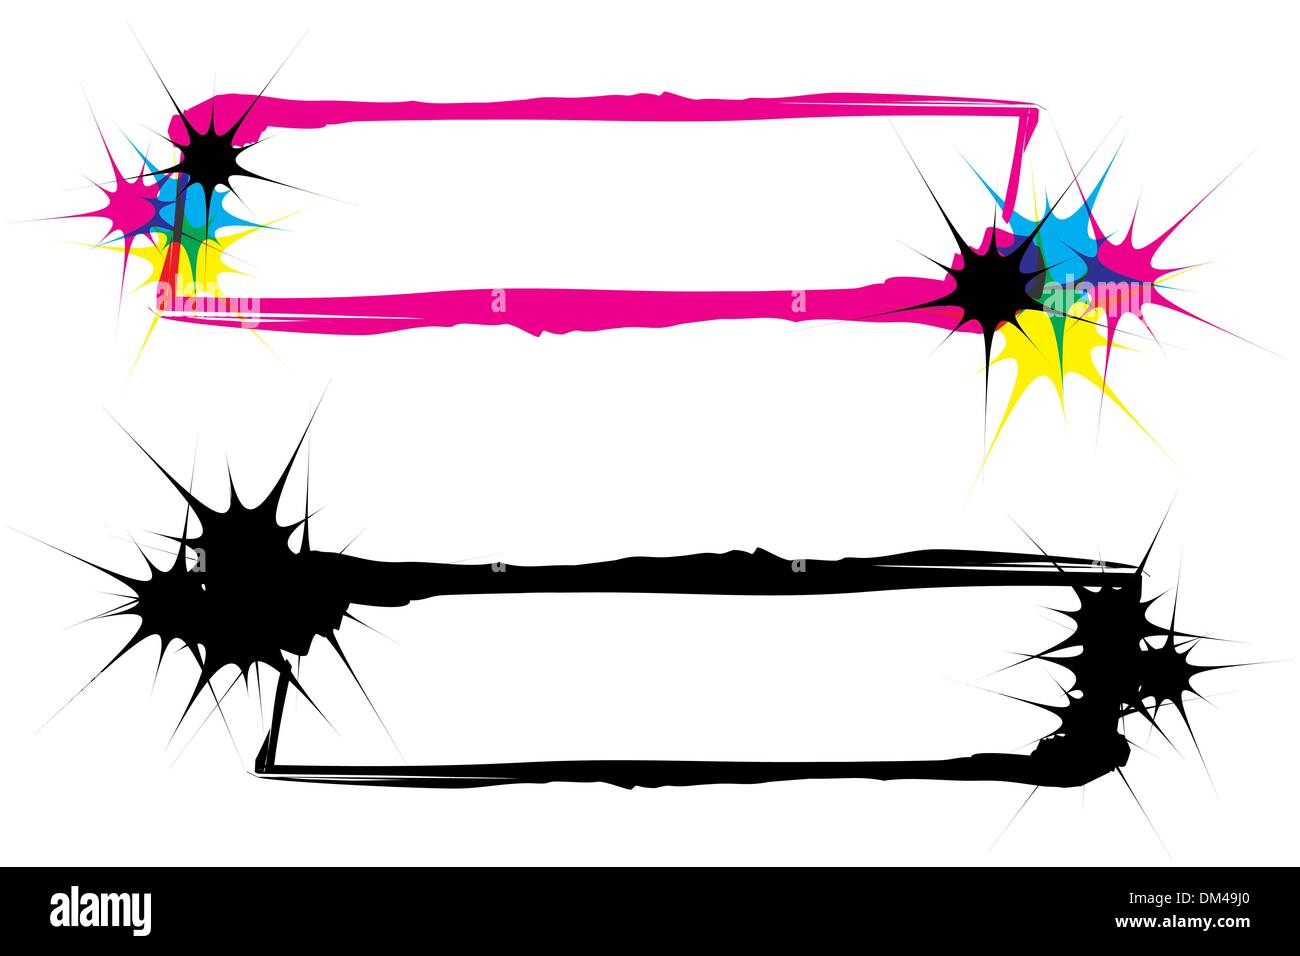 inkblots frames CMYK and silhouette - Stock Image